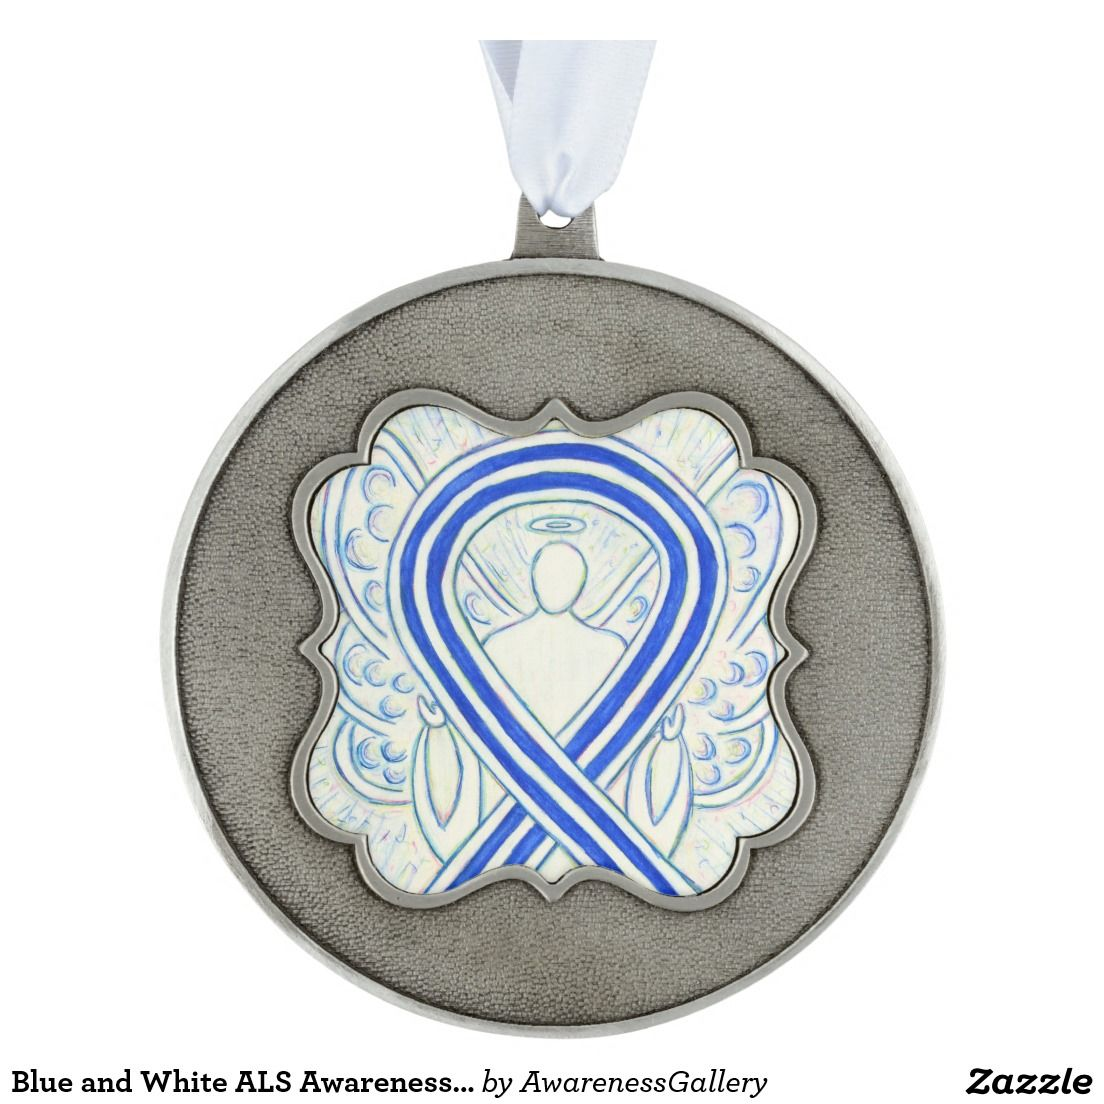 Blue and White ALS Awareness Ribbon Angel Ornament | Amyotrophic